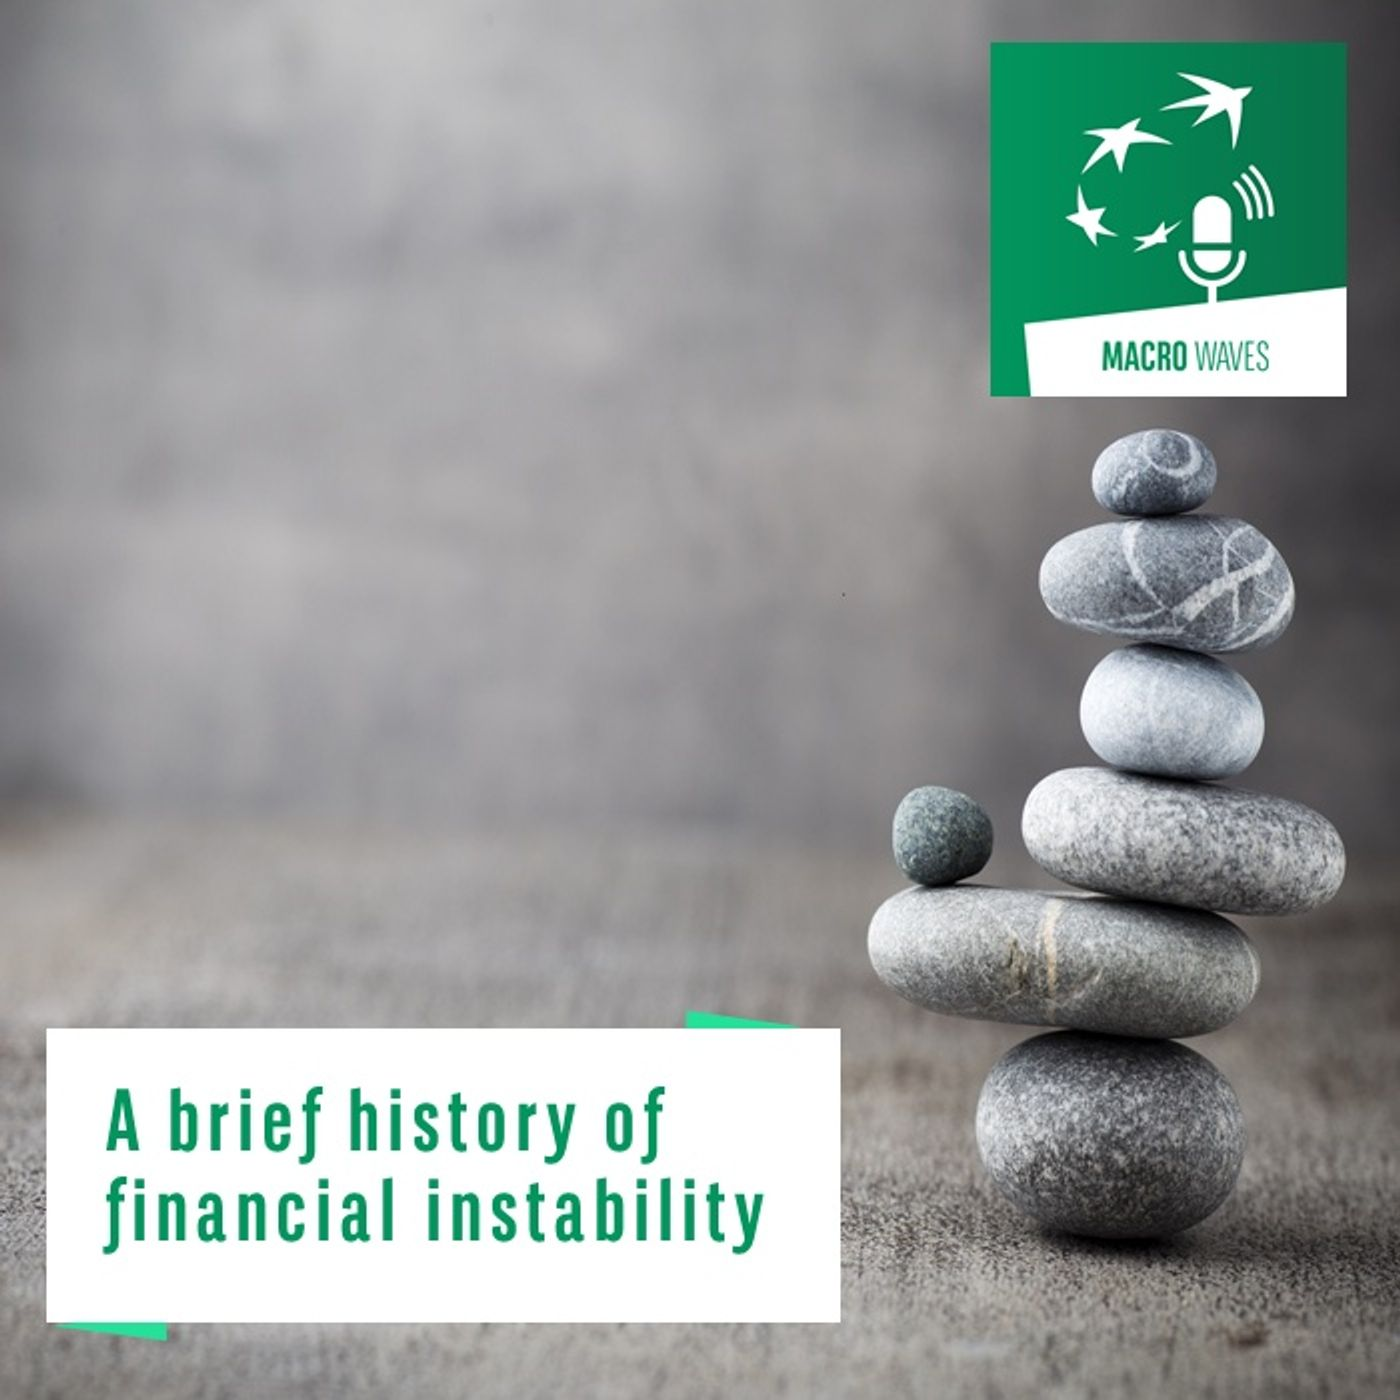 #02 – A brief history of financial instability